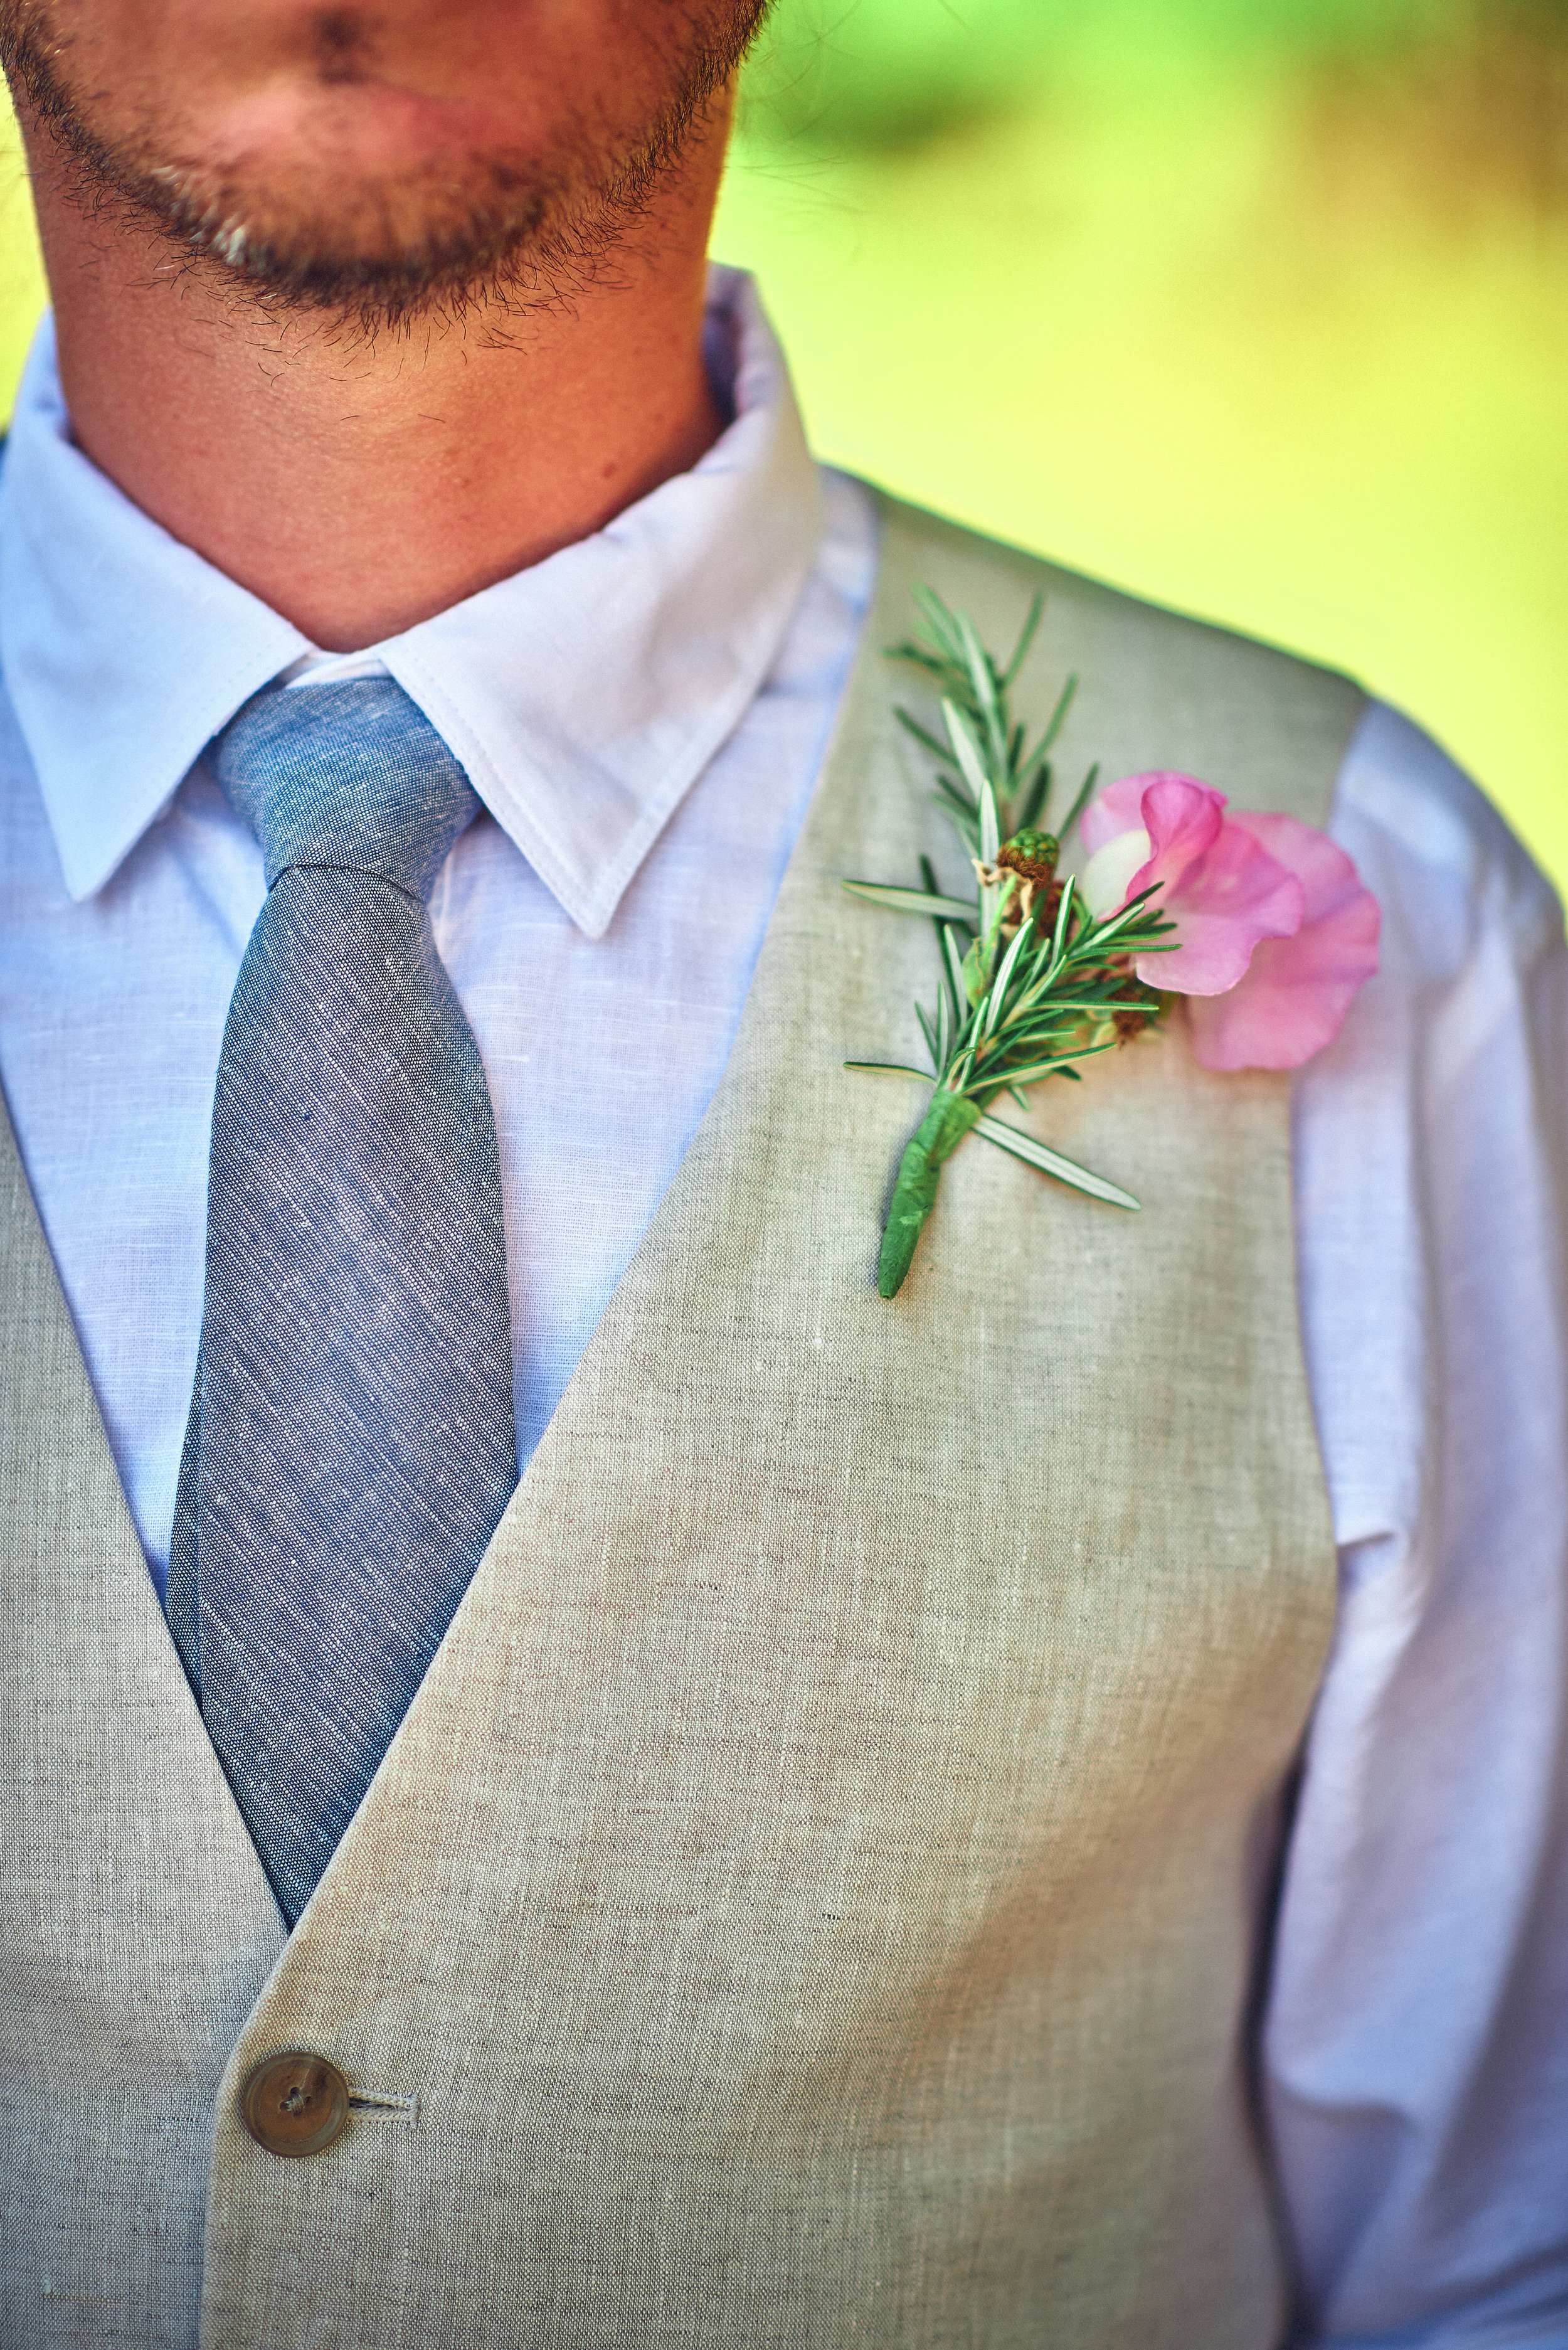 pea and rosemary at groom details at plum nelli farm wedding.jpg